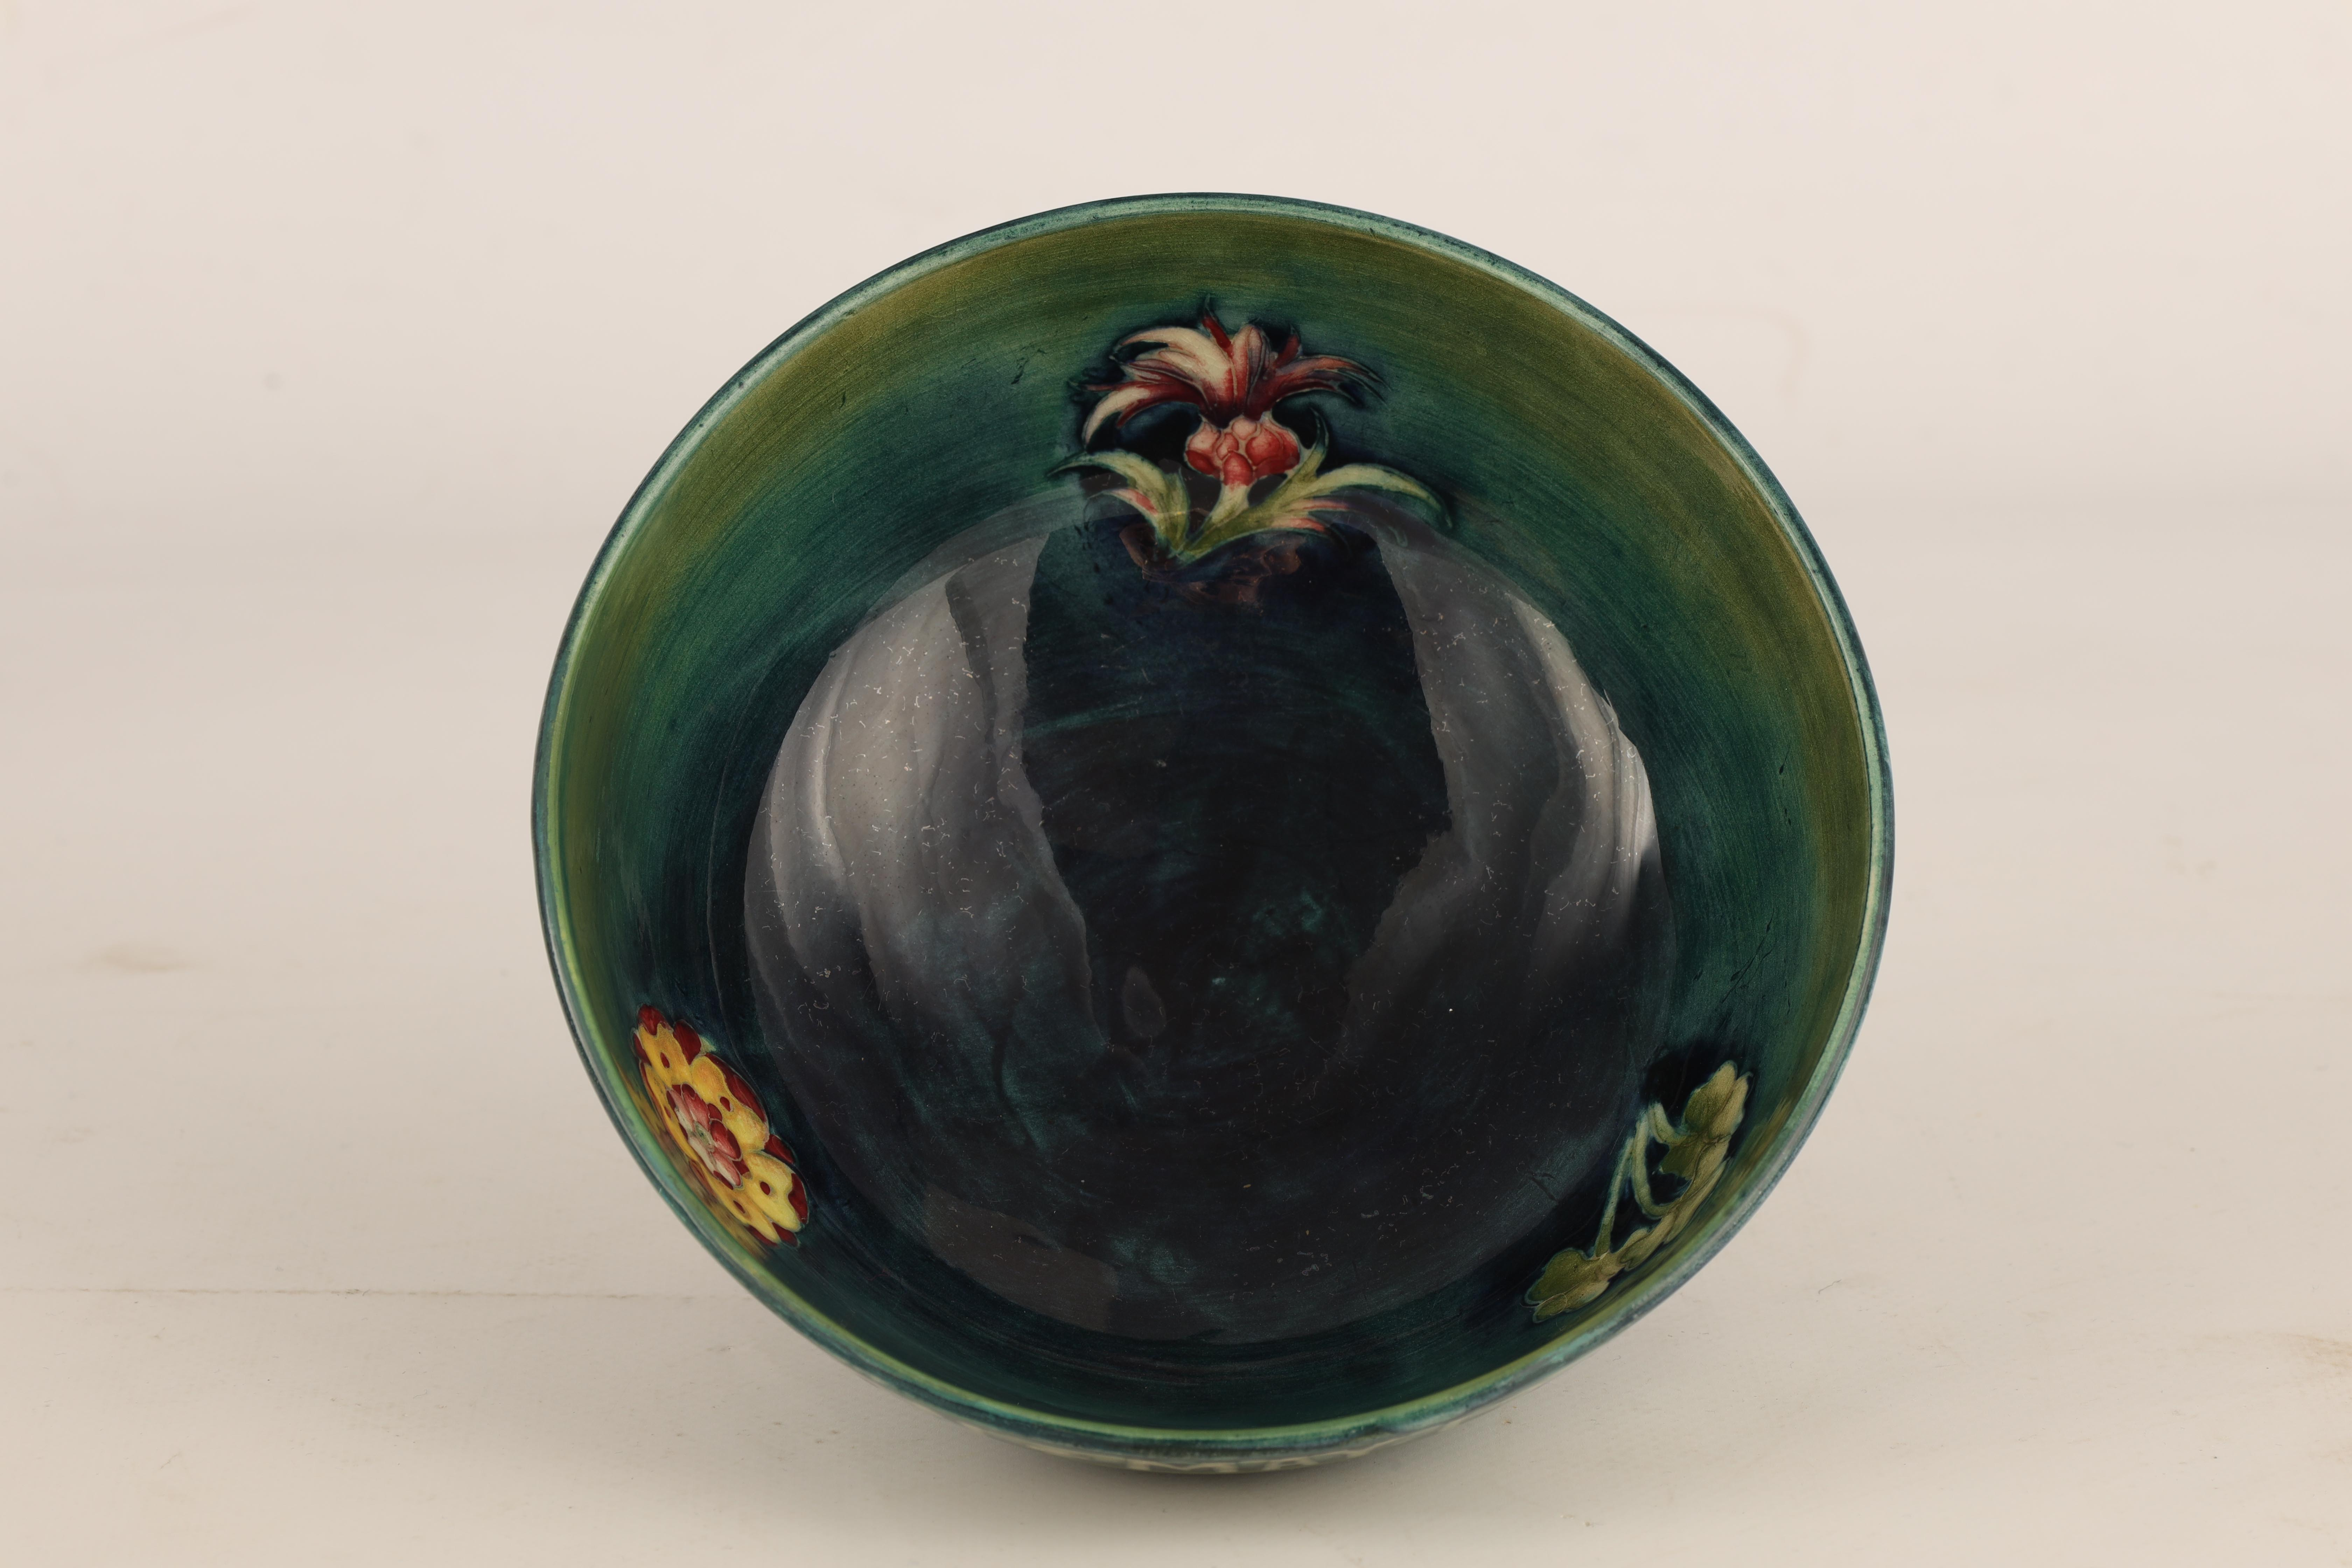 A 1930S MOORCROFT FOOTED BOWL COMMEMORATING THE CORONATION OF GEORGE VI AND QUEEN ELIZABETH MAY 12th - Image 4 of 6